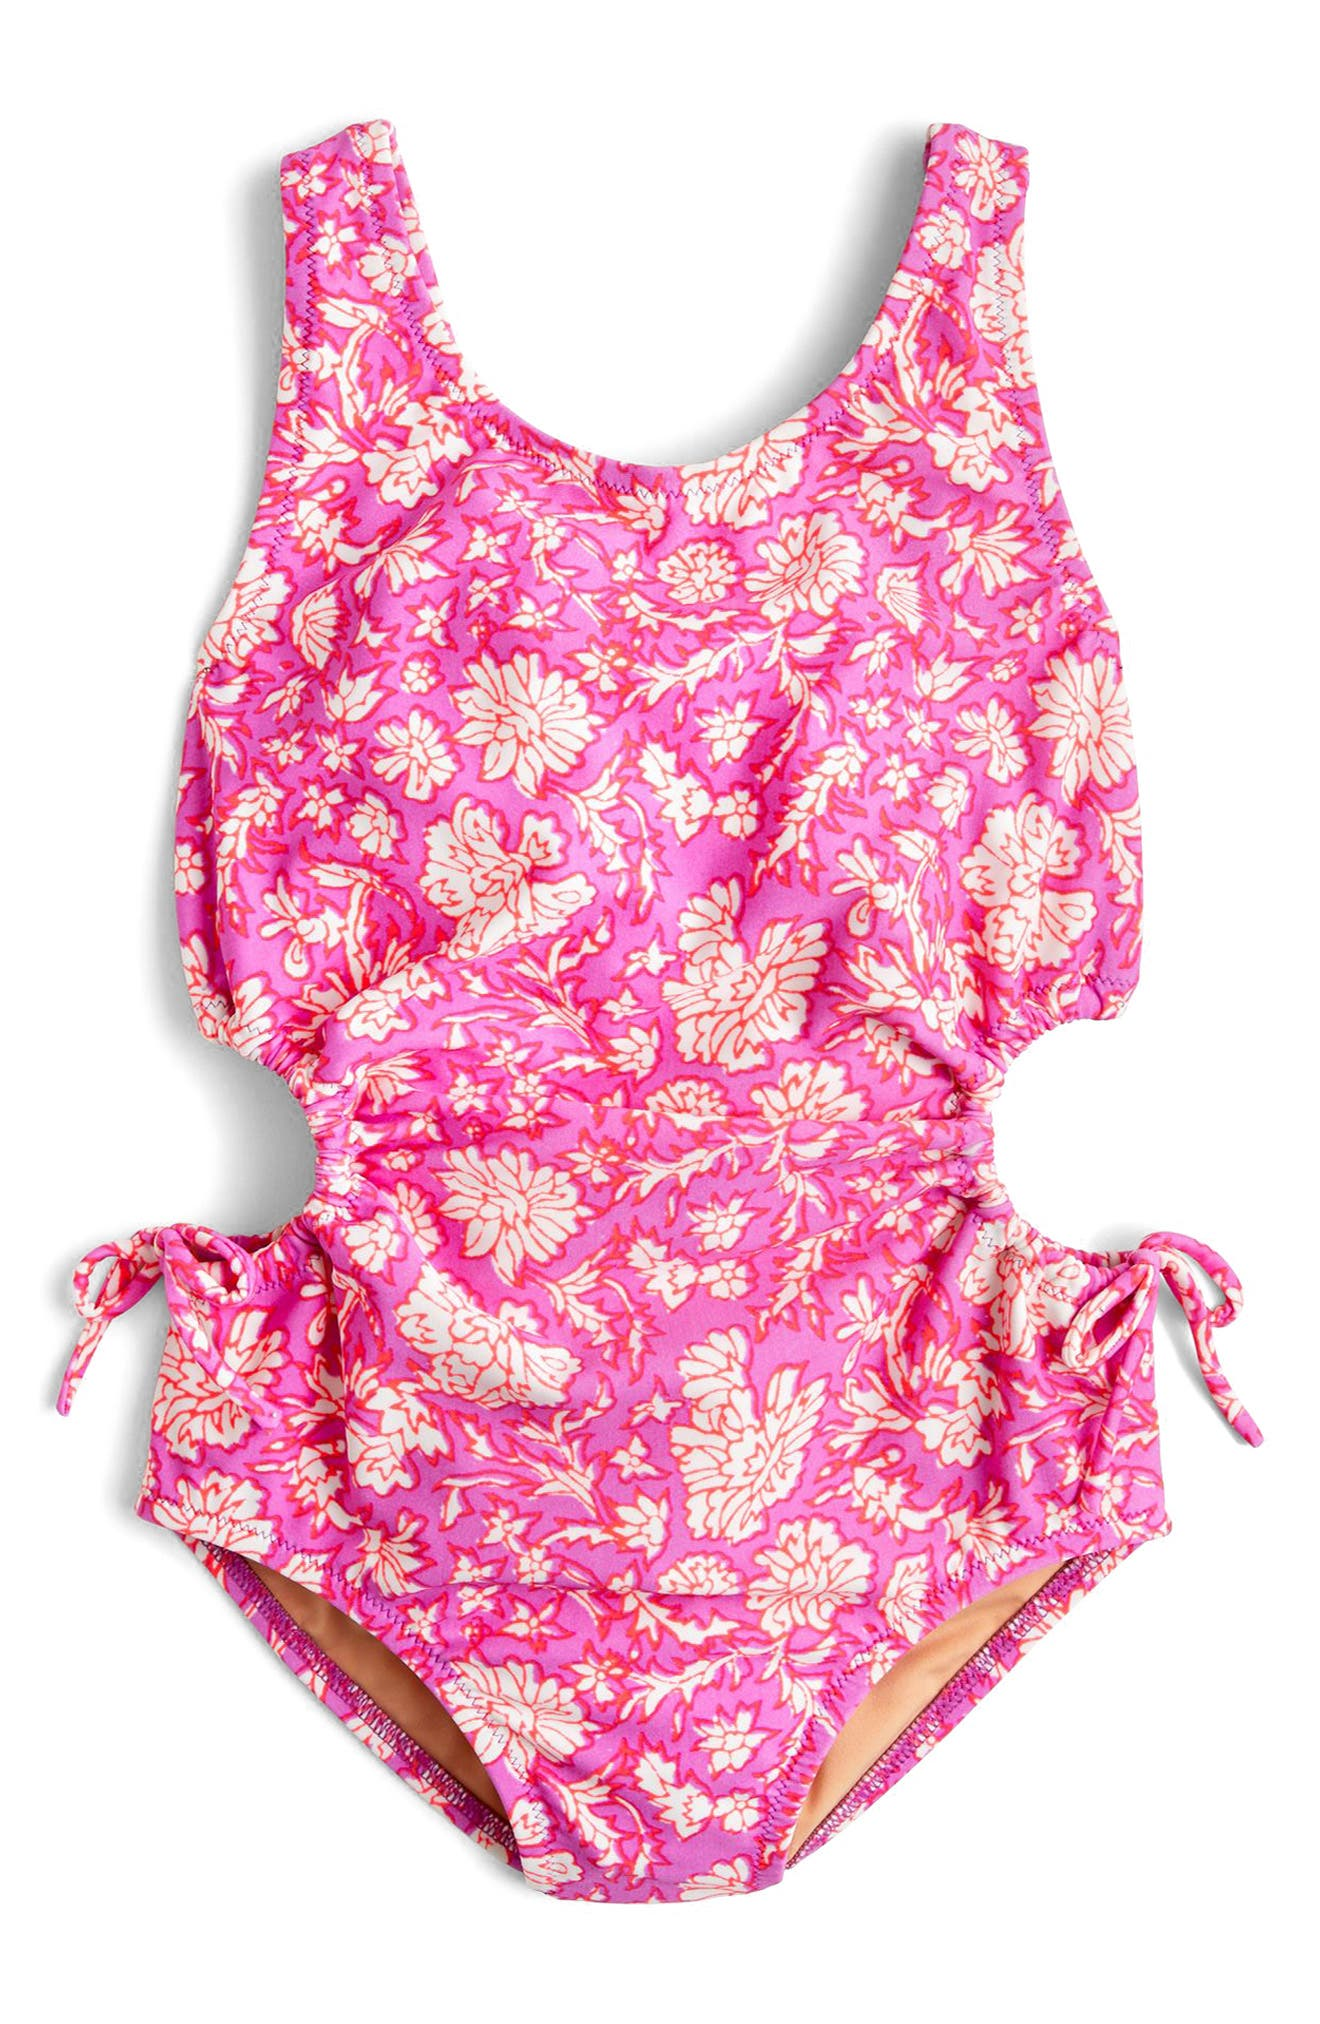 crewcuts by J. Crew SZ Blockprints™ Floral One-Piece Swimsuit (Toddler Girls, Little Girls & Big Girls)